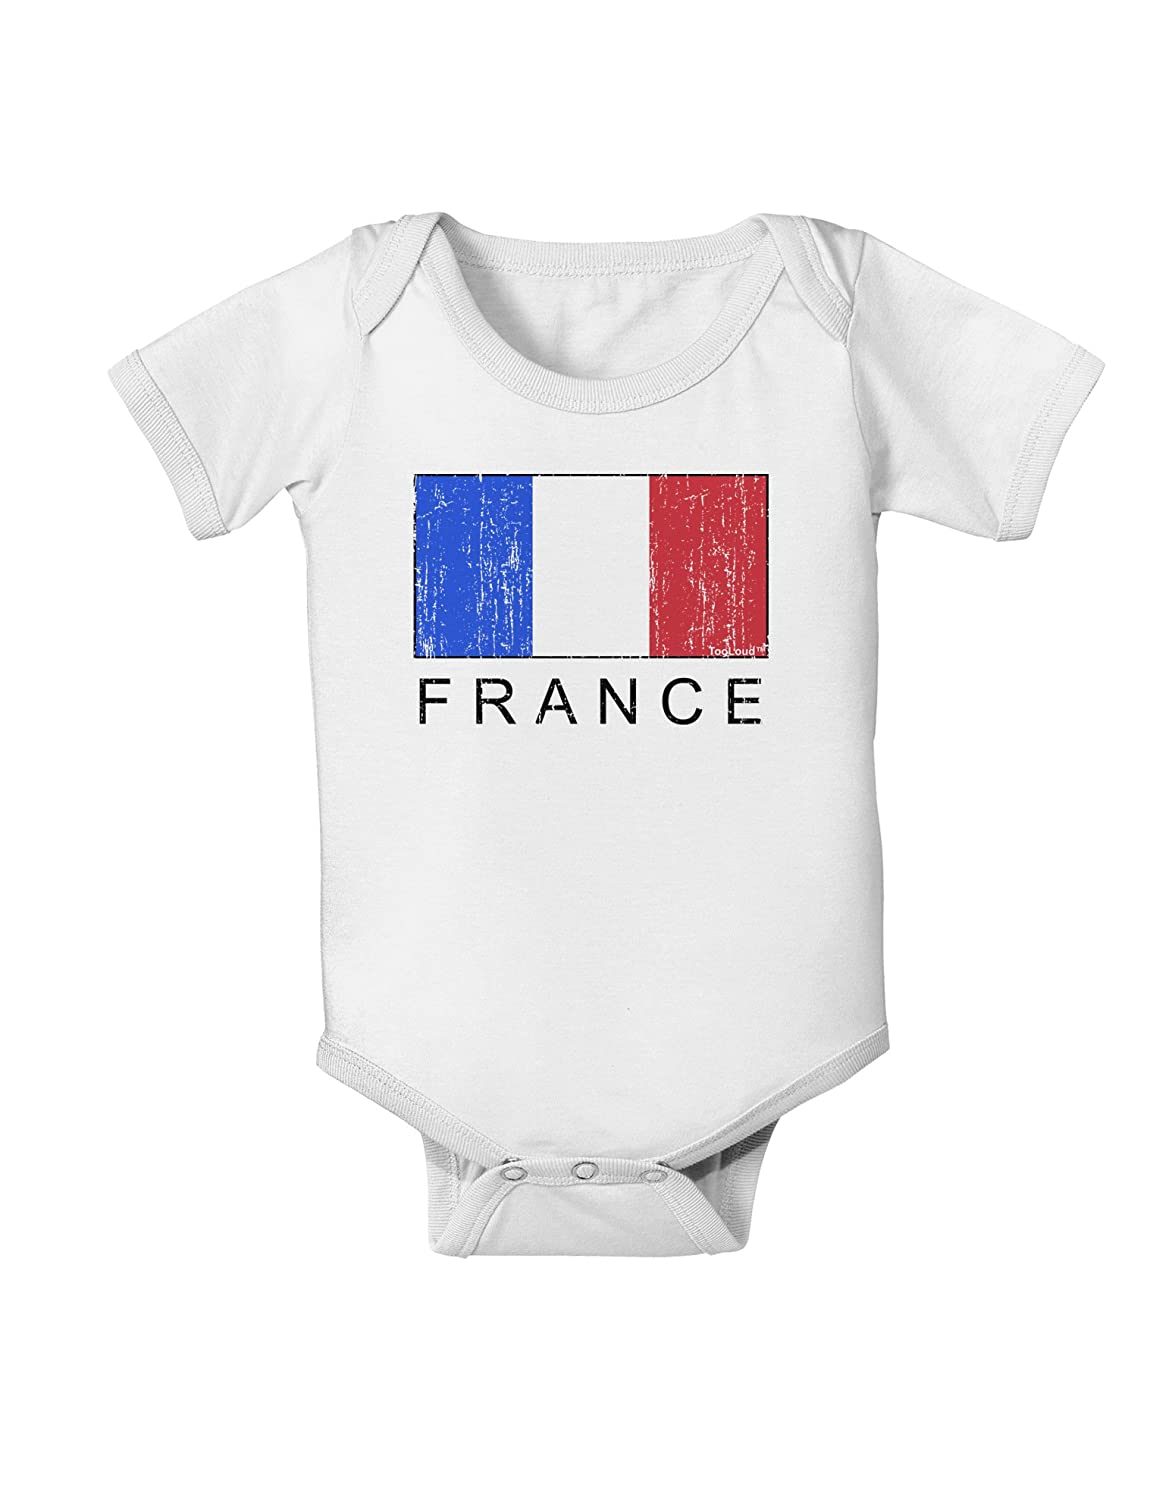 France Text Distressed Baby Romper Bodysuit TooLoud French Flag